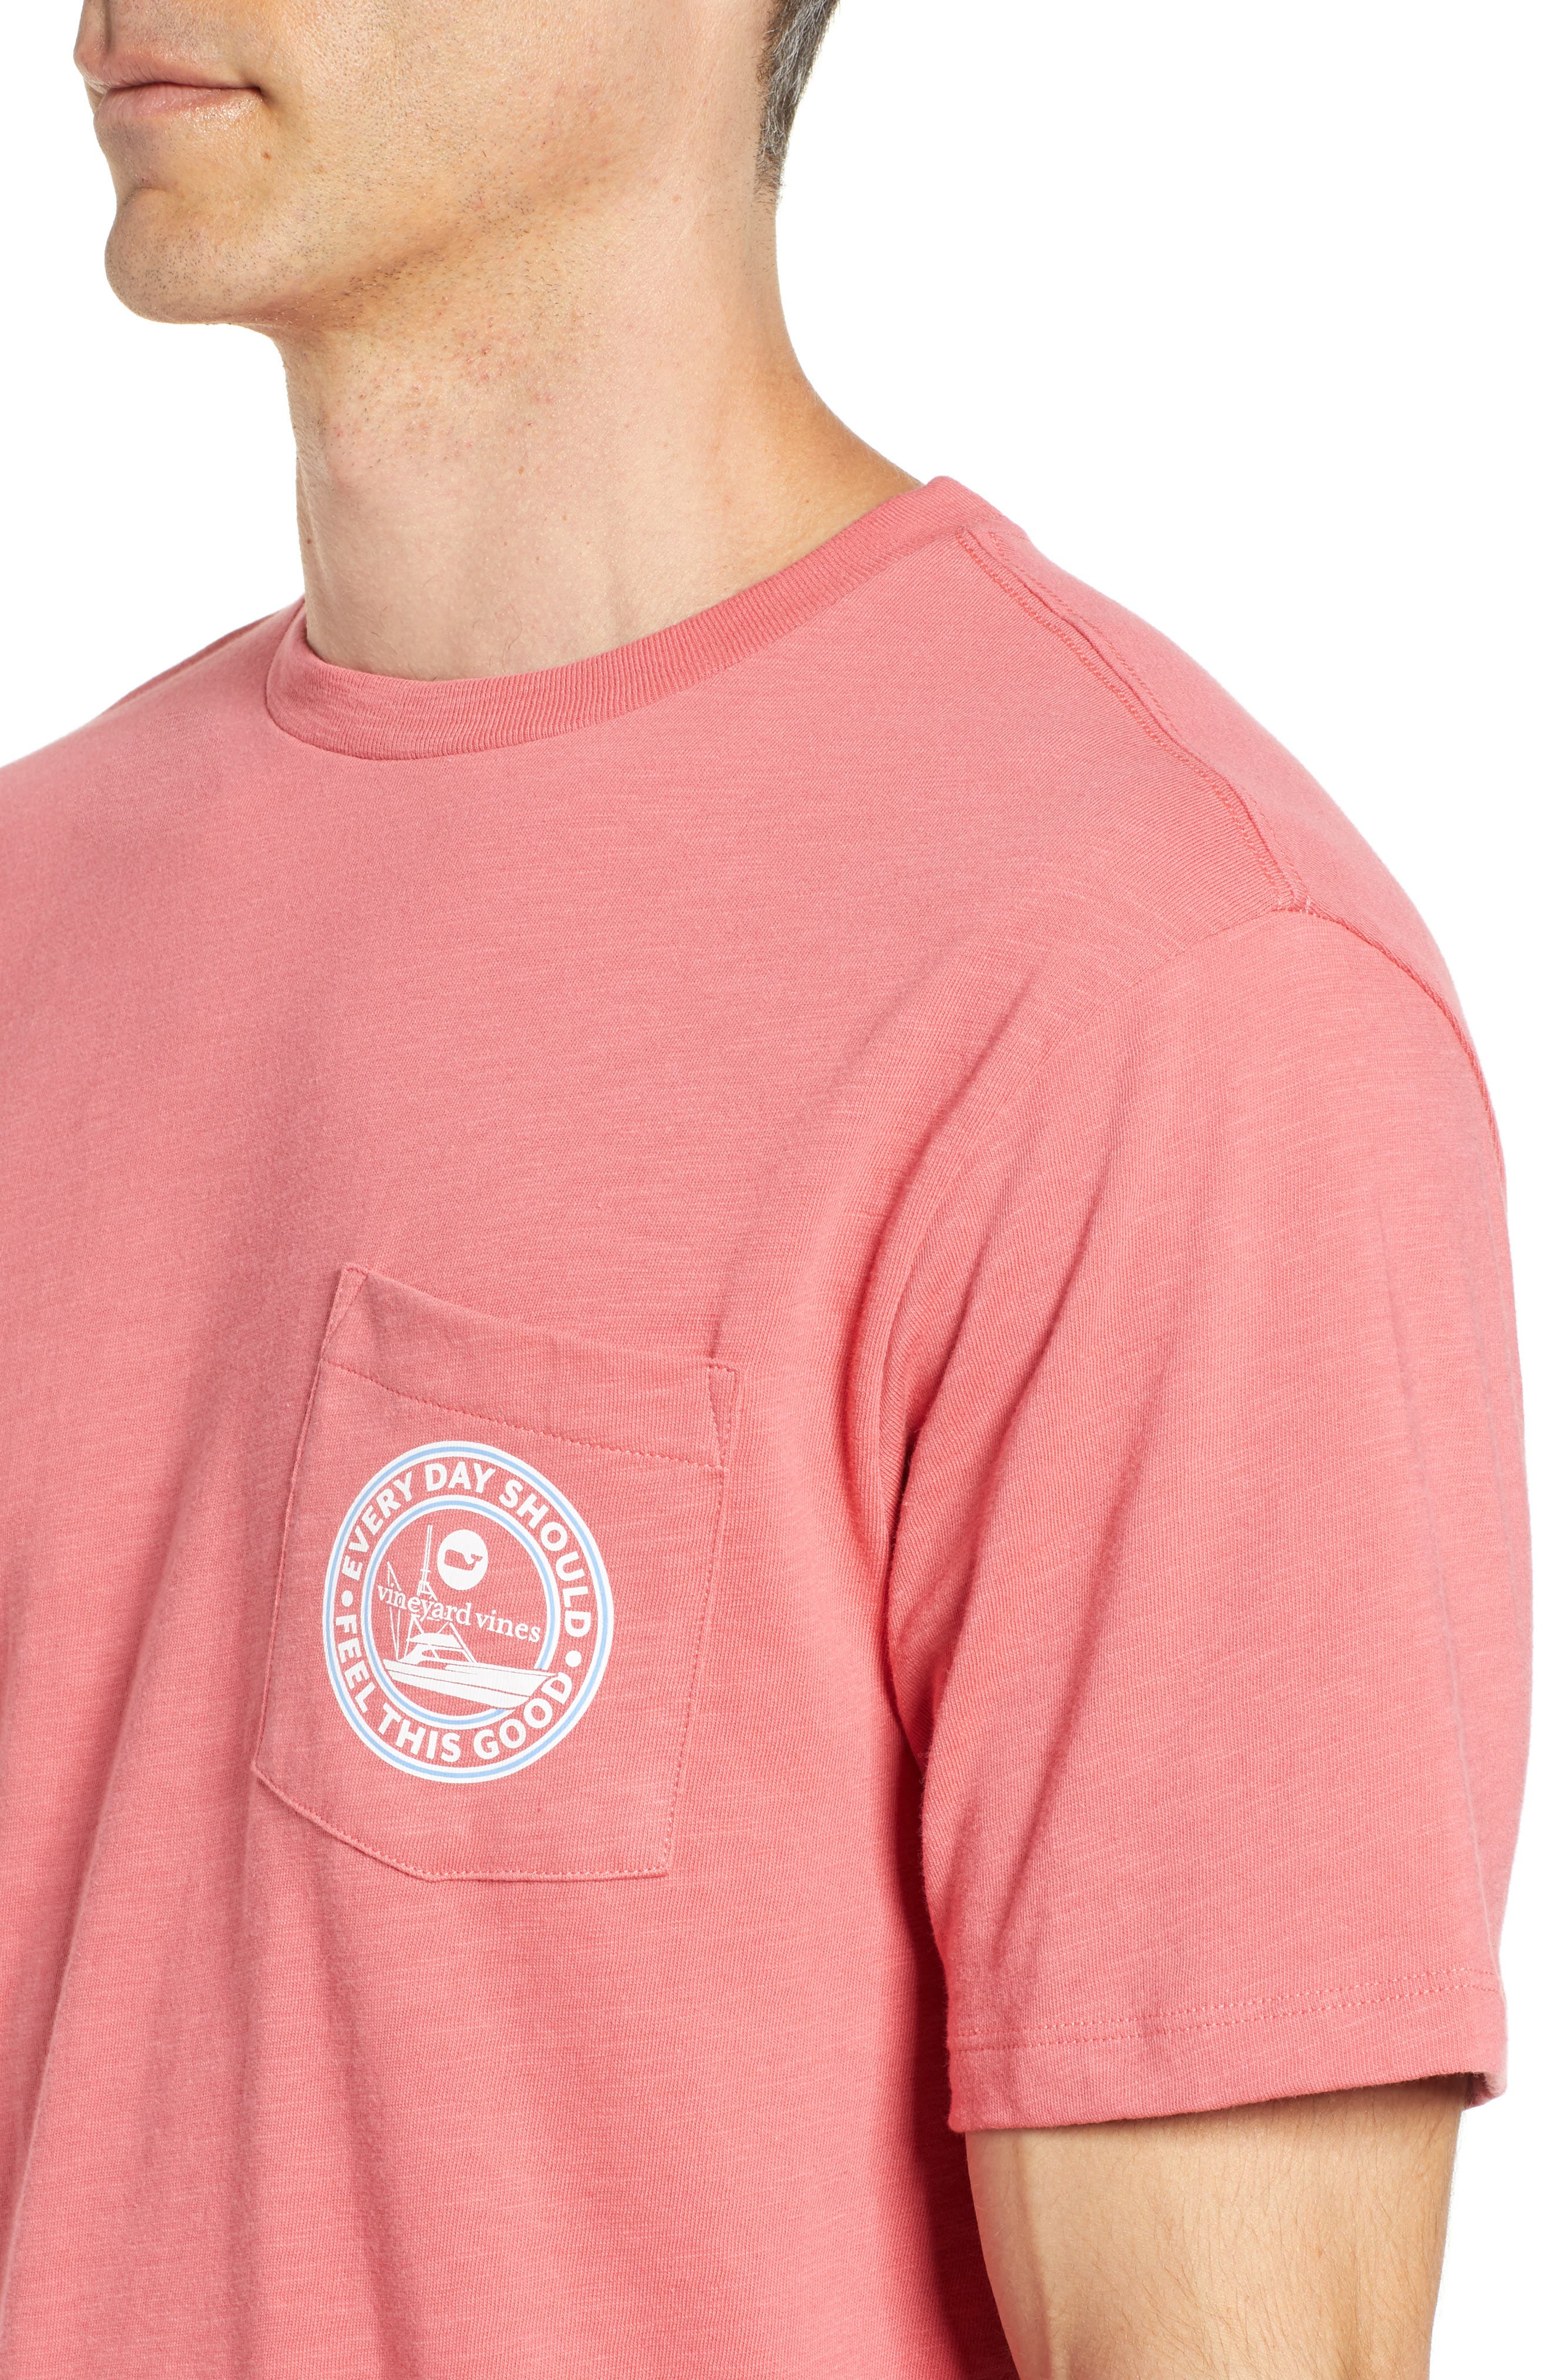 Every Day Should Feel This Good Pocket T-Shirt,                             Alternate thumbnail 4, color,                             628